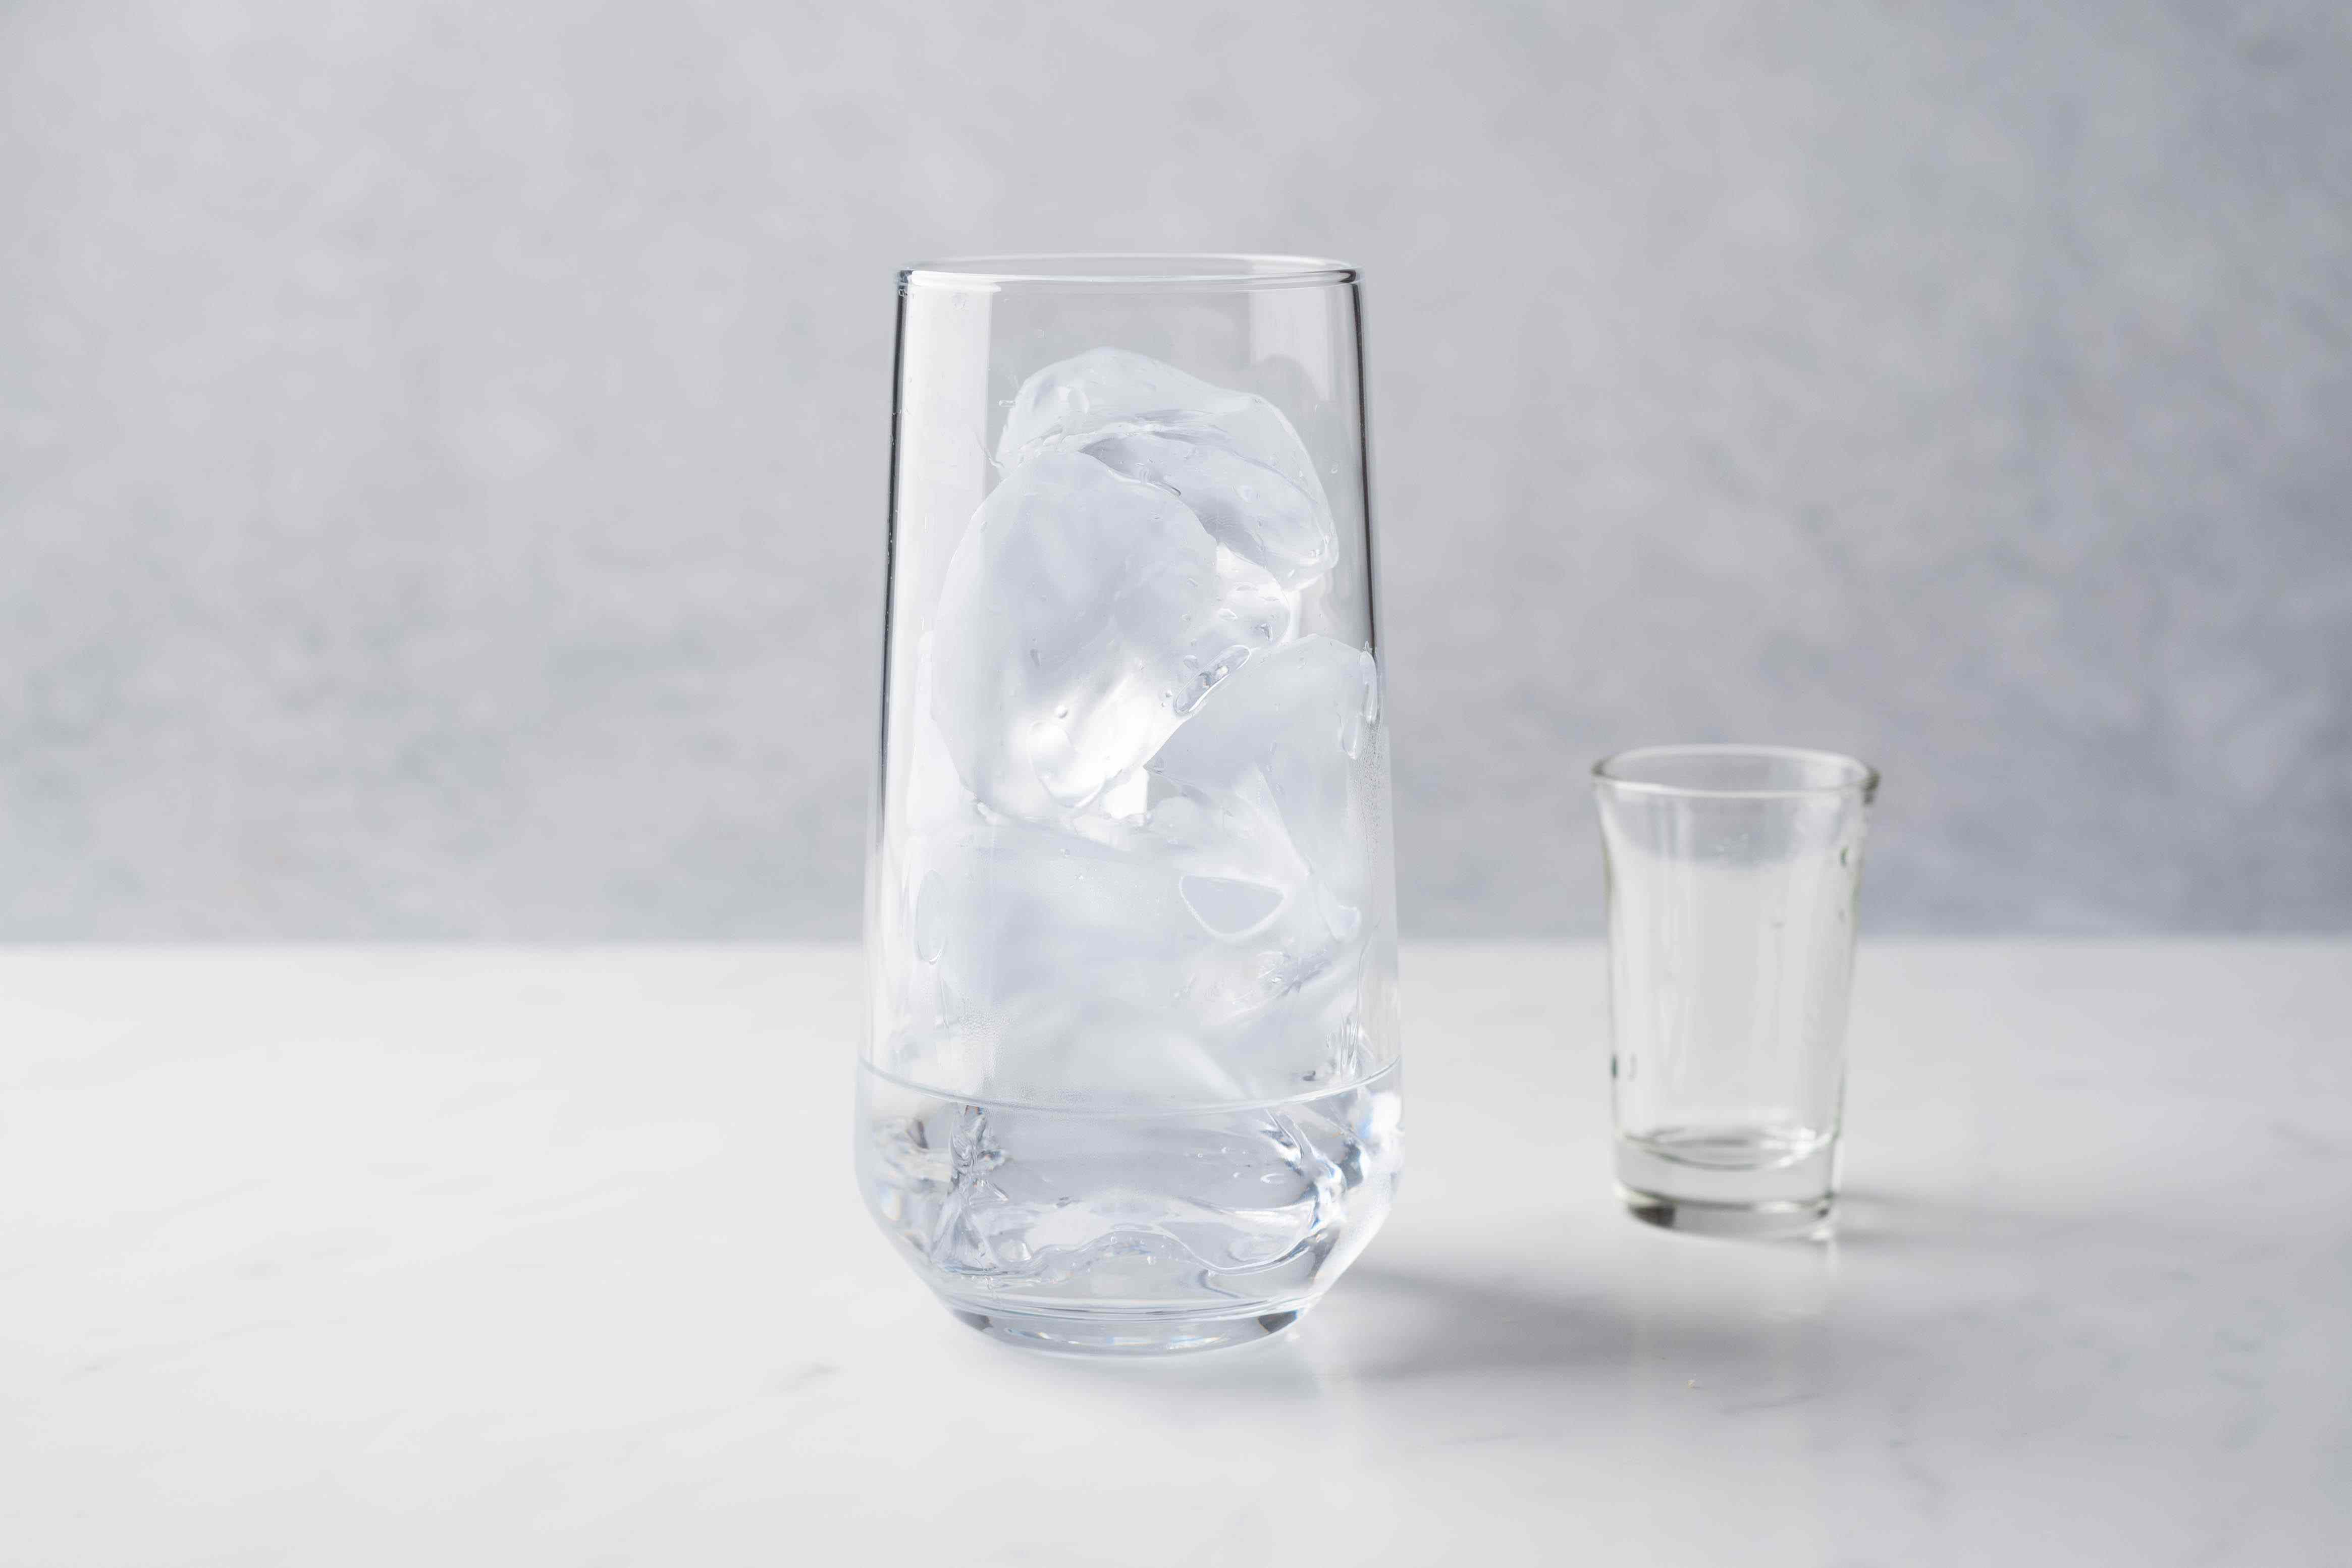 Pour the pisco over the ice